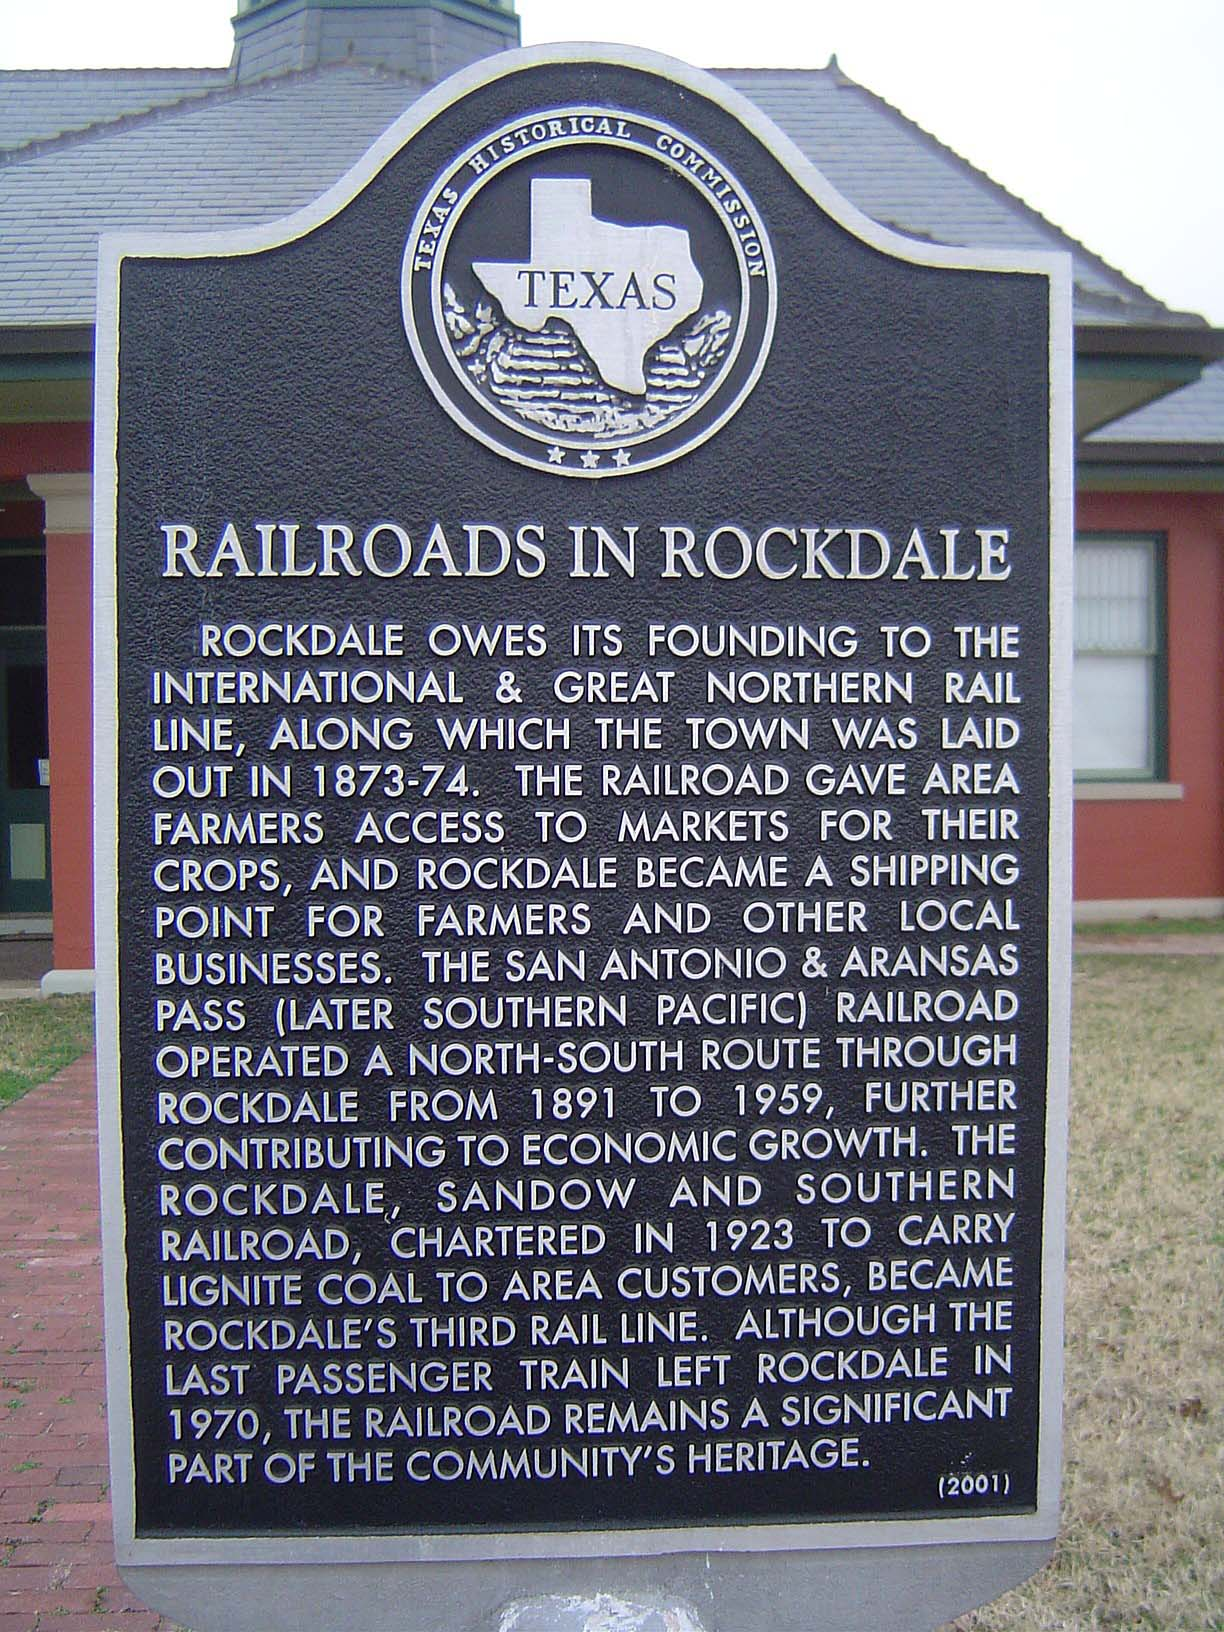 Railroads in Rockdale Historical Marker